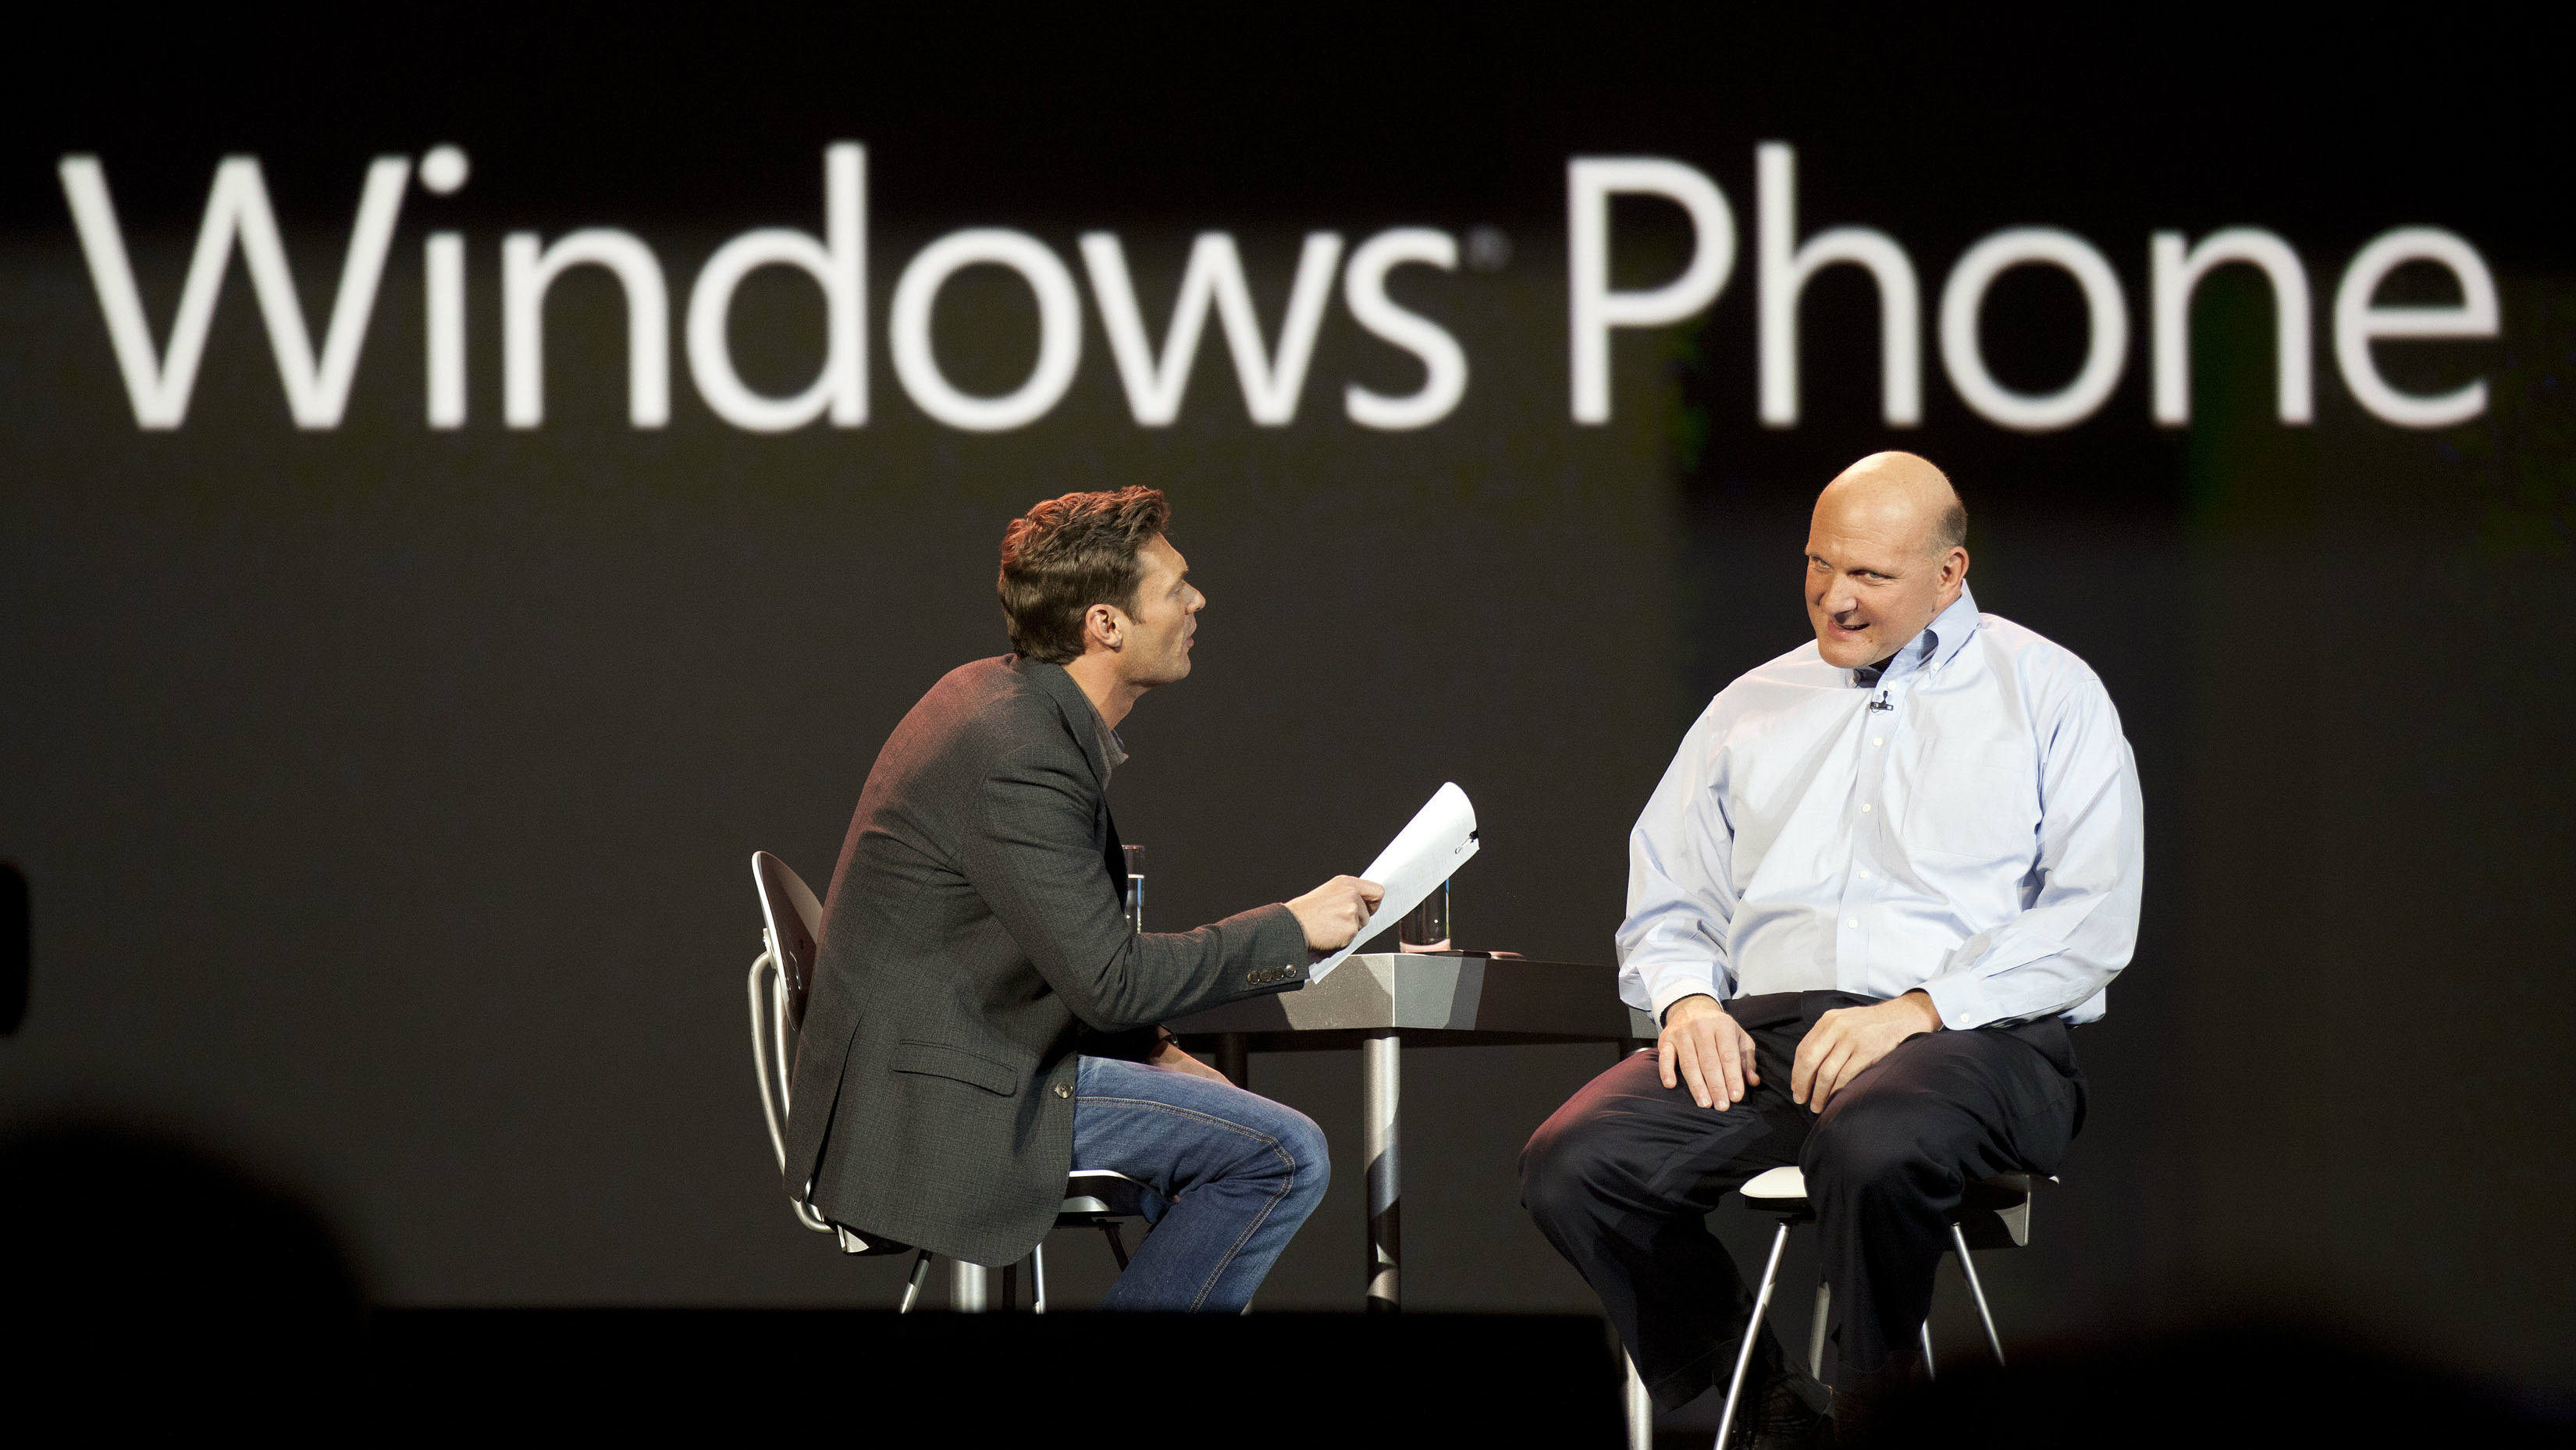 windows phone steve ballmer